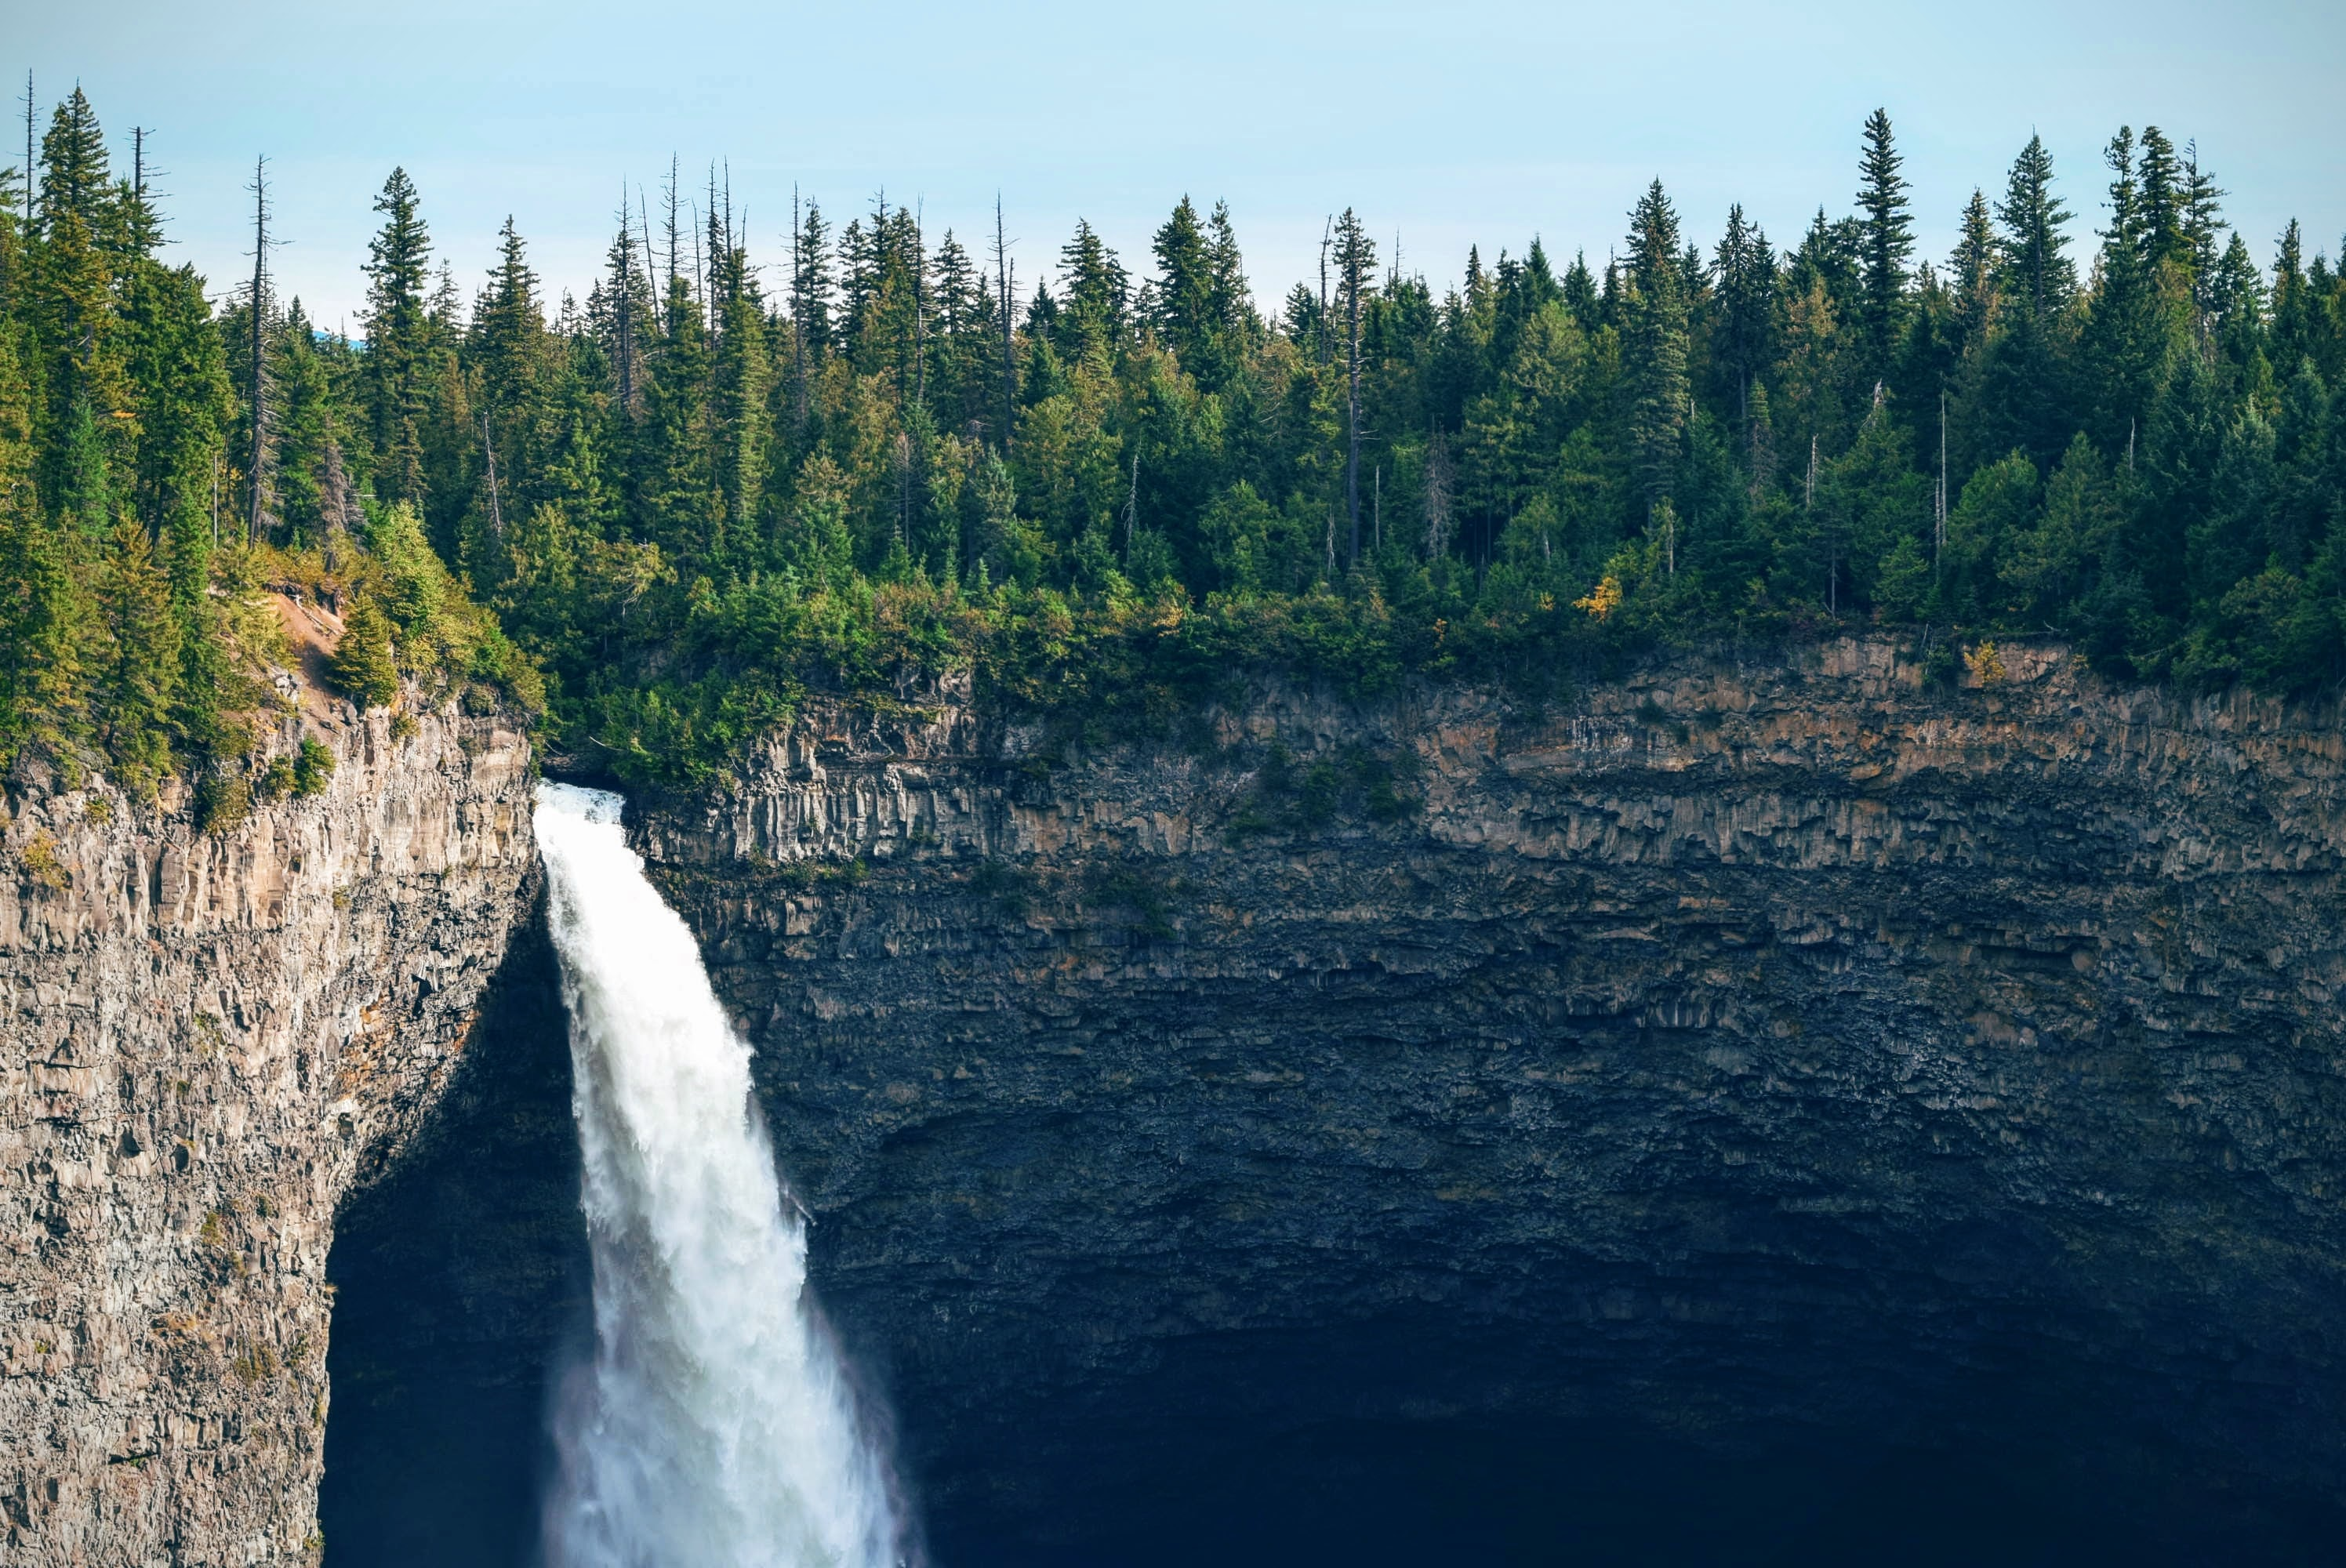 A tall waterfall tumbling down from a forested cliff